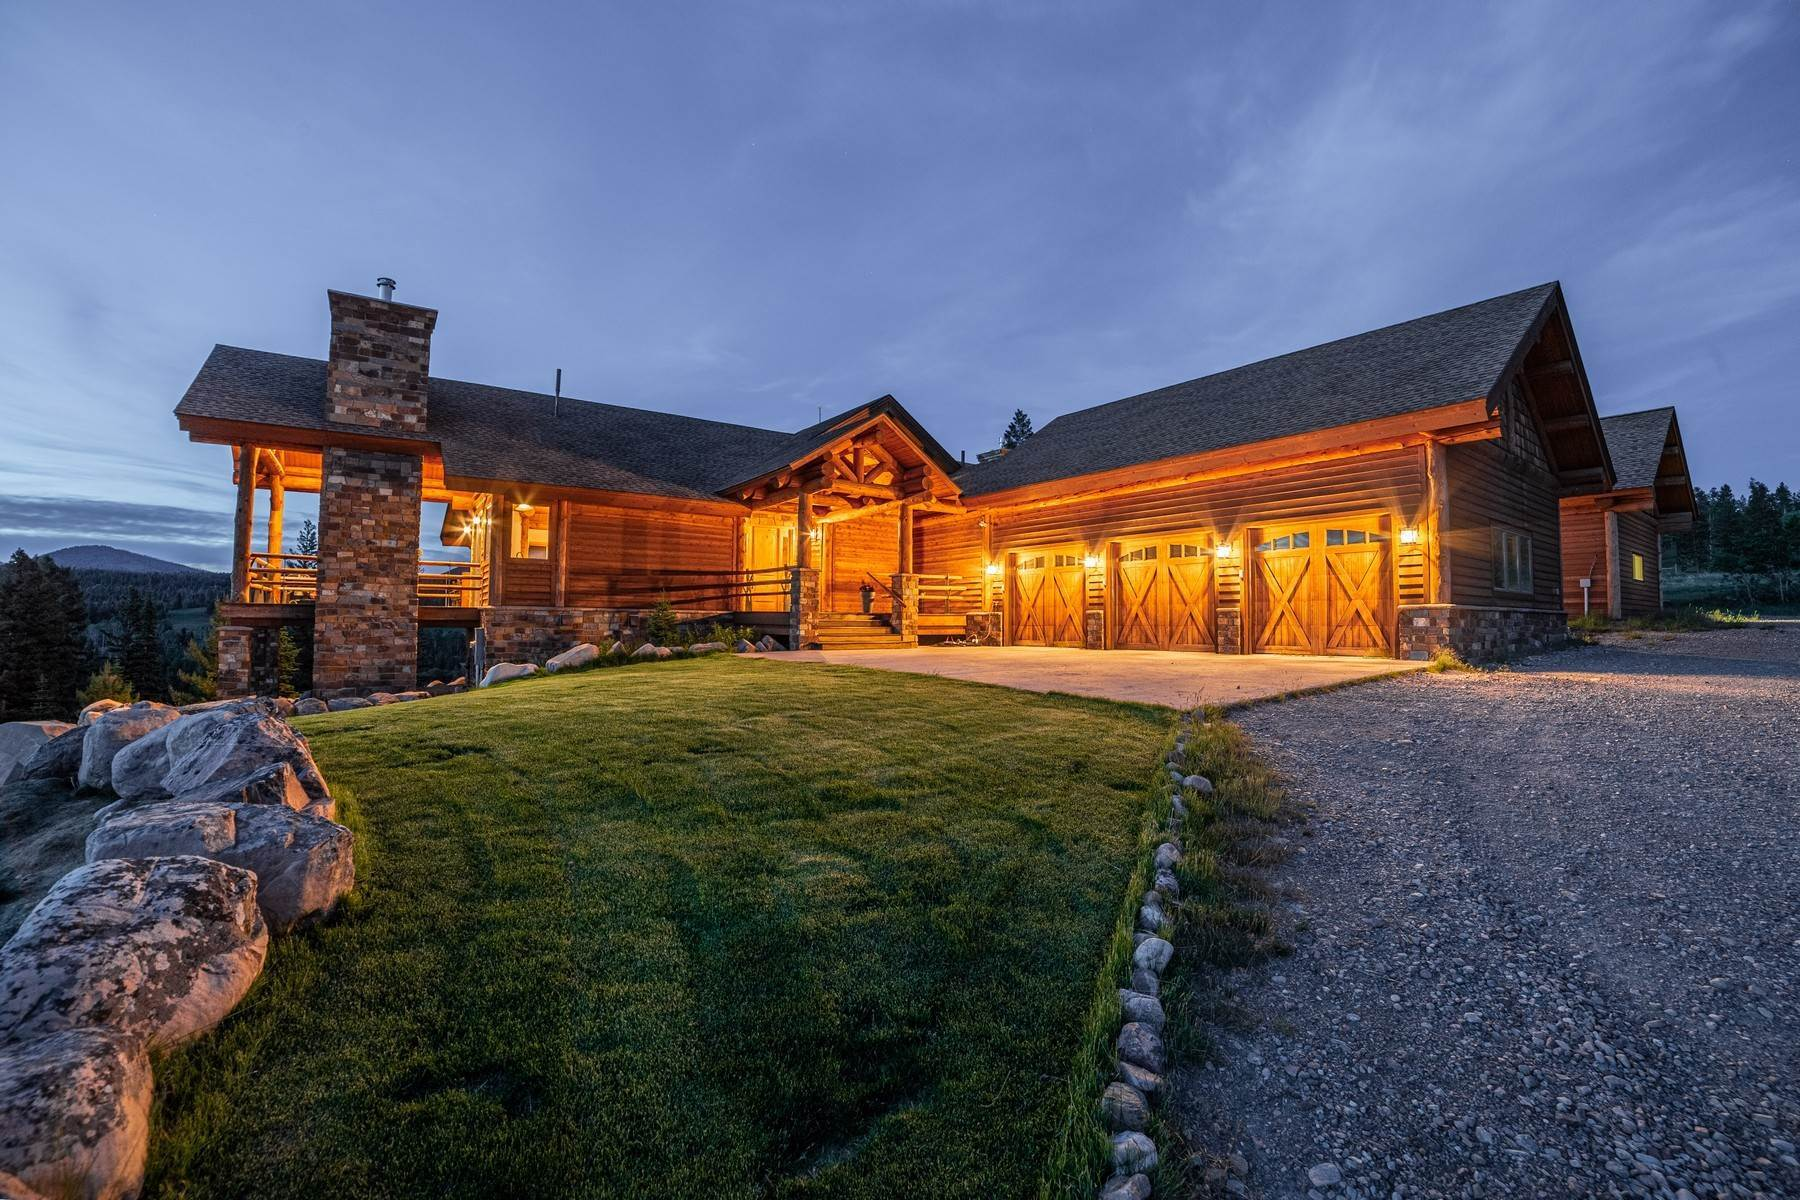 Single Family Homes for Sale at Krohn Lake Ranch Lincoln, Montana 59639 United States